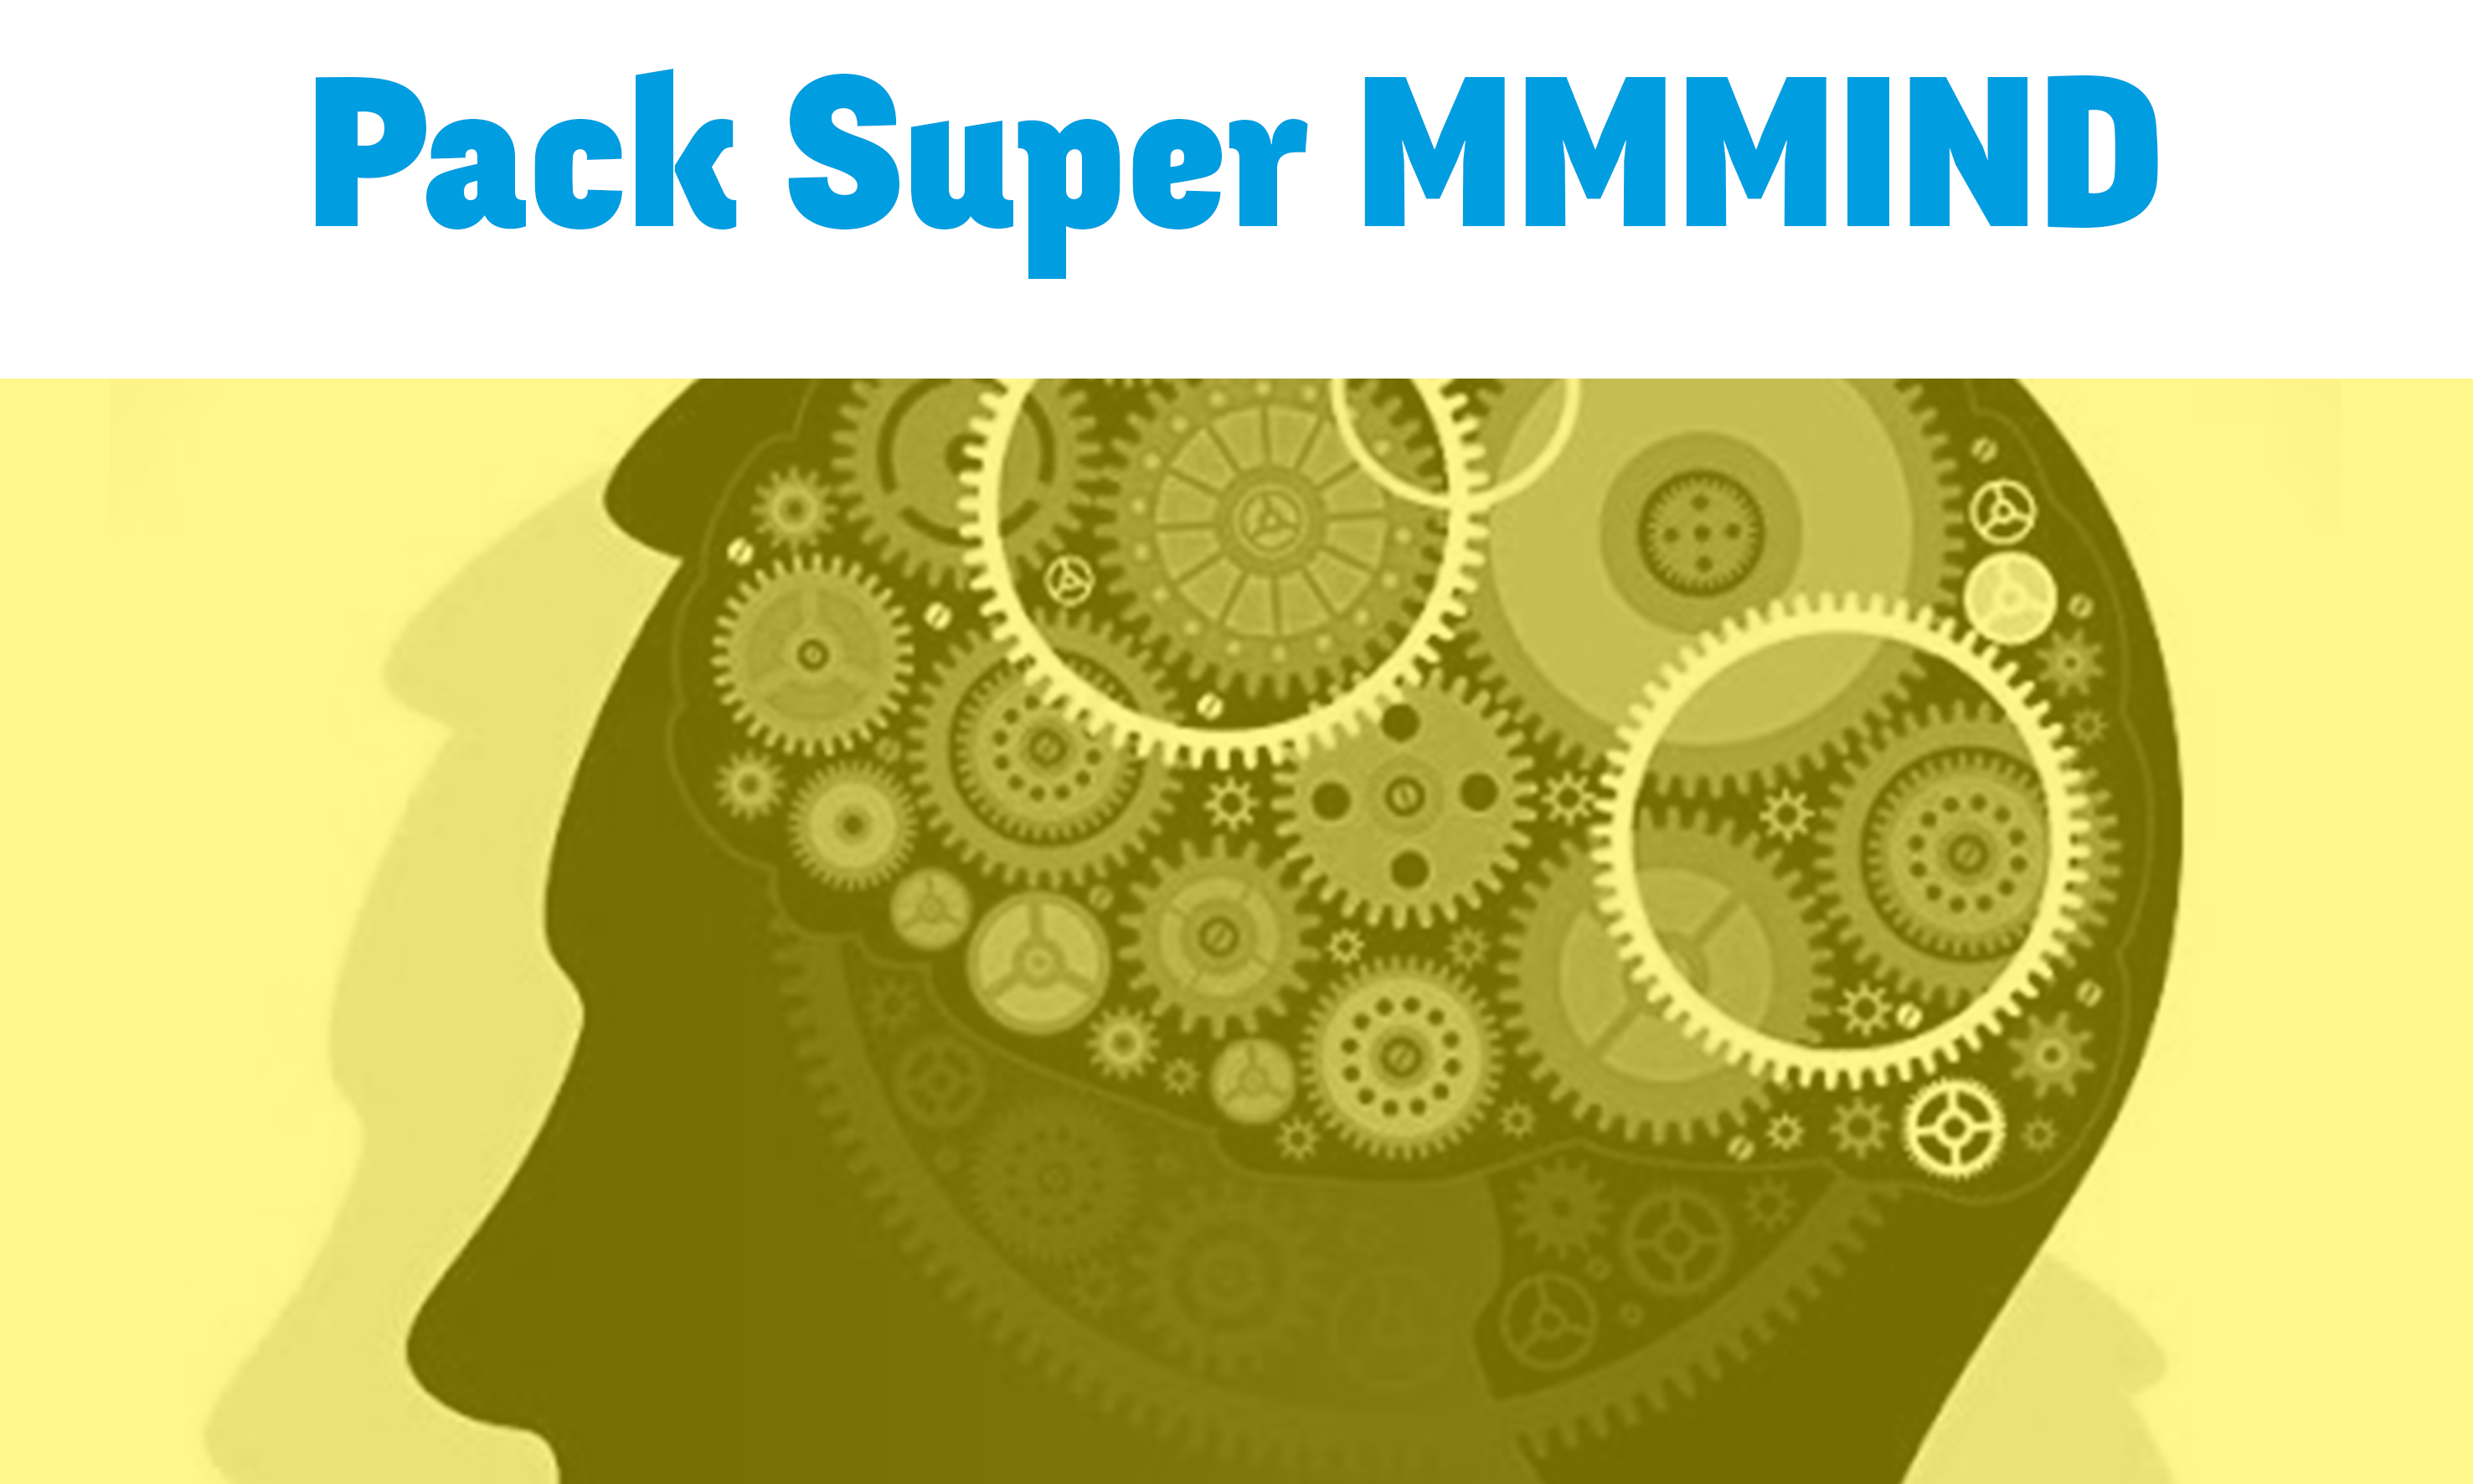 Pack_Super_MMMIND-1464565983.png